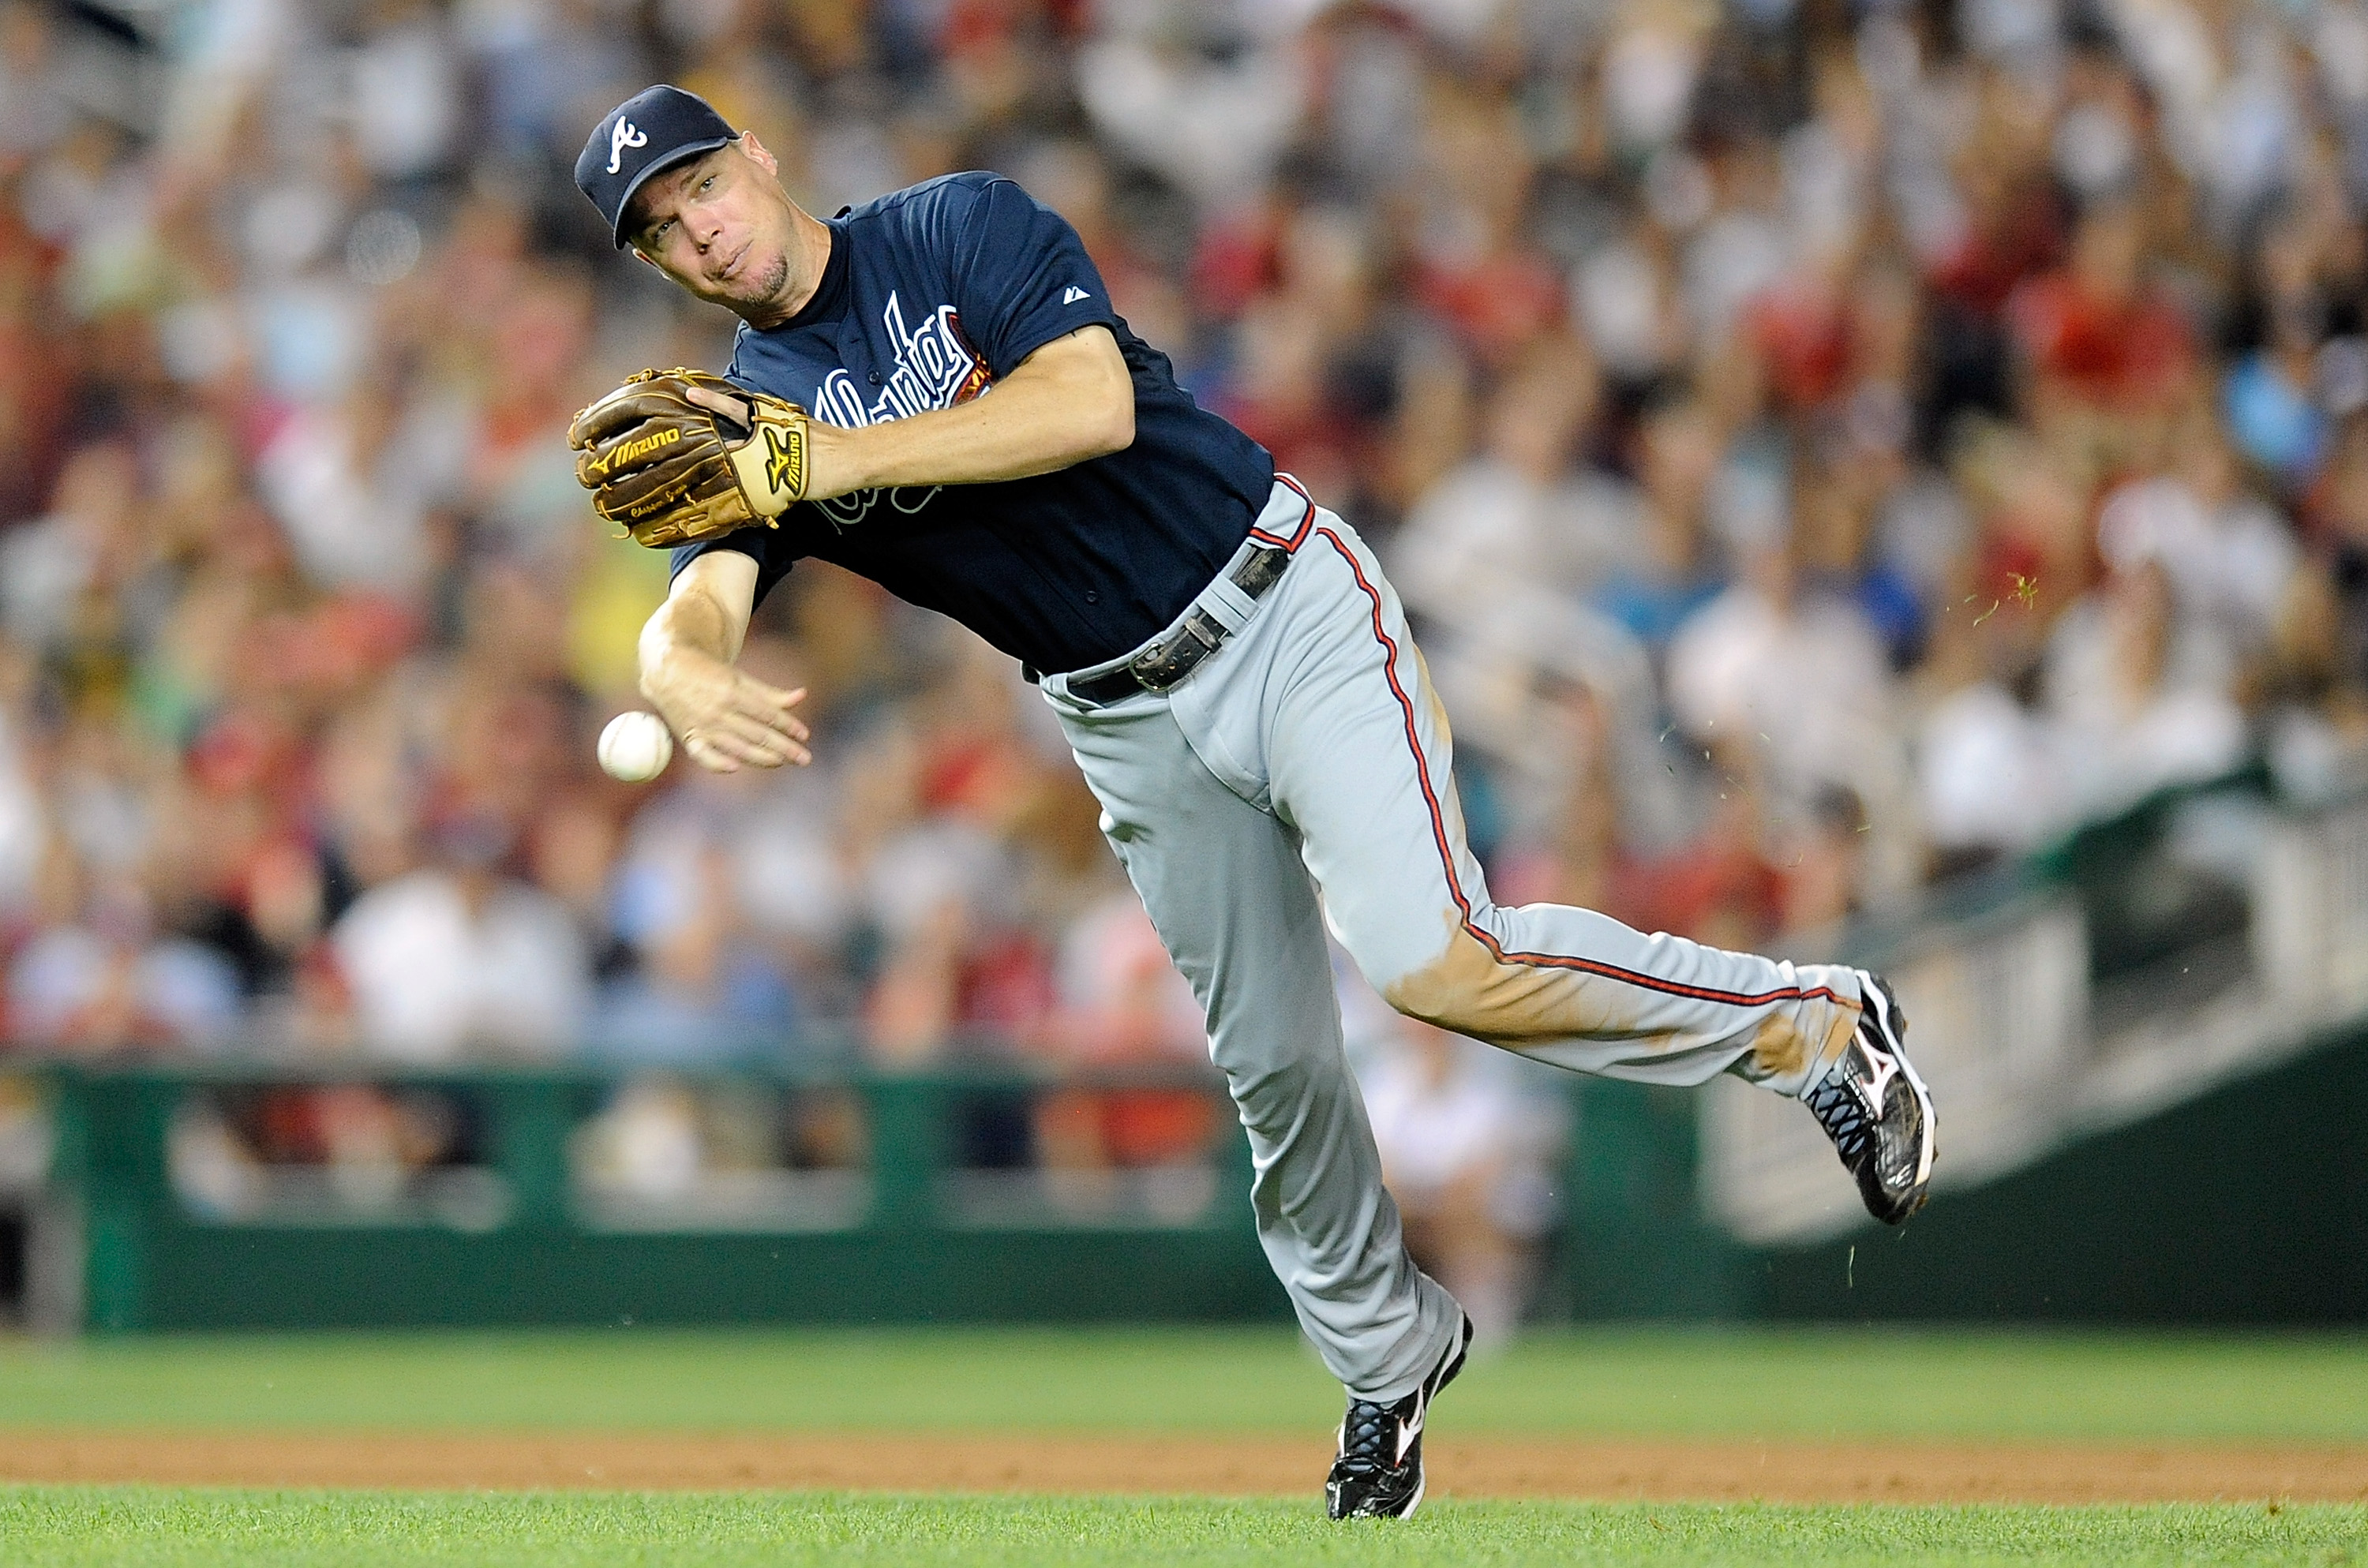 WASHINGTON - JULY 27:  Chipper Jones #10 of the Atlanta Braves throws the ball to first base against the Washington Nationals at Nationals Park on July 27, 2010 in Washington, DC.  (Photo by Greg Fiume/Getty Images)